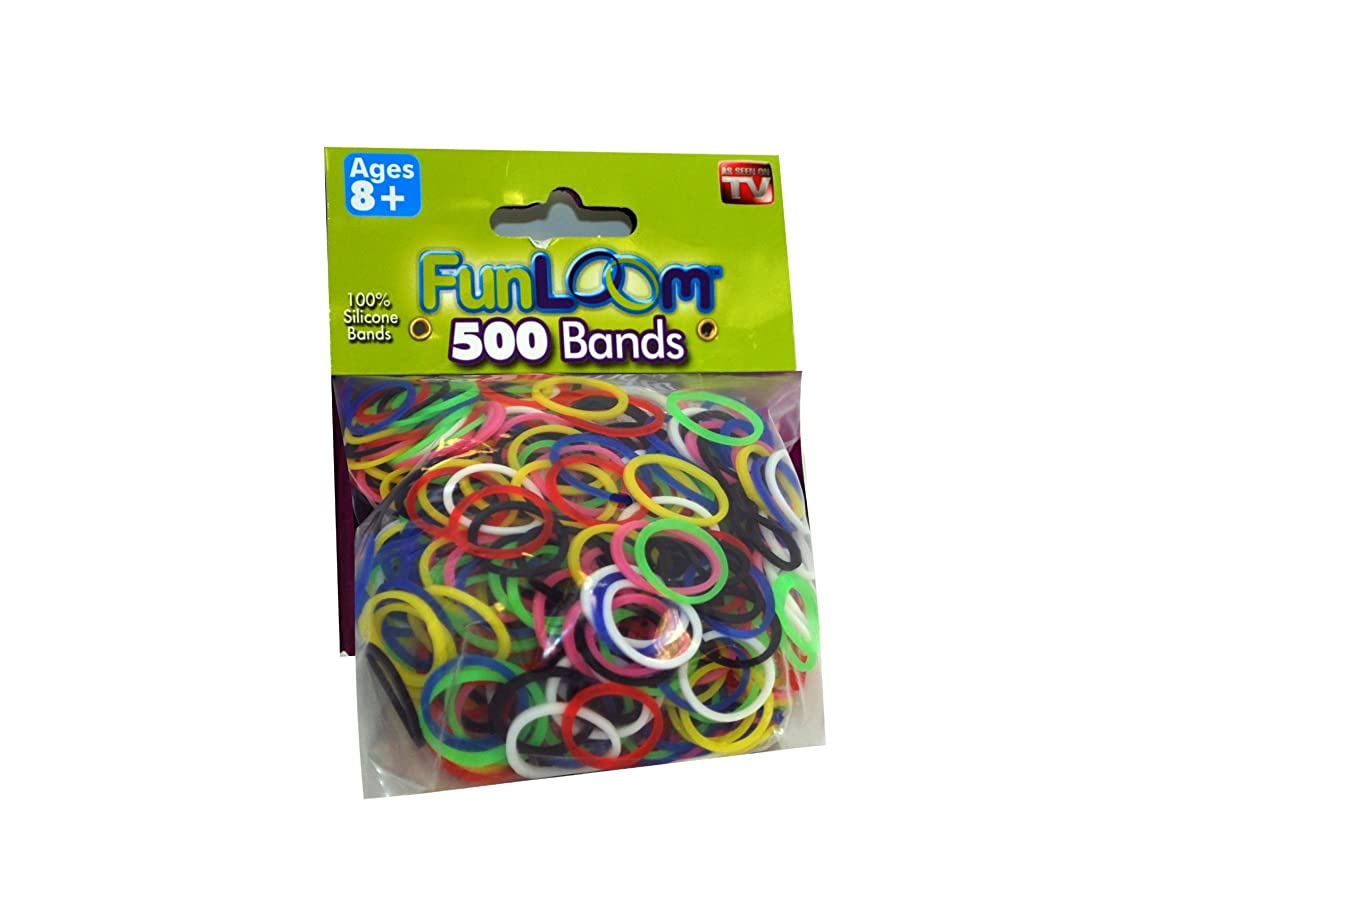 FunLoom B00GWSUEDW Original Refill Bands 500Pk, Multicolor m70073053